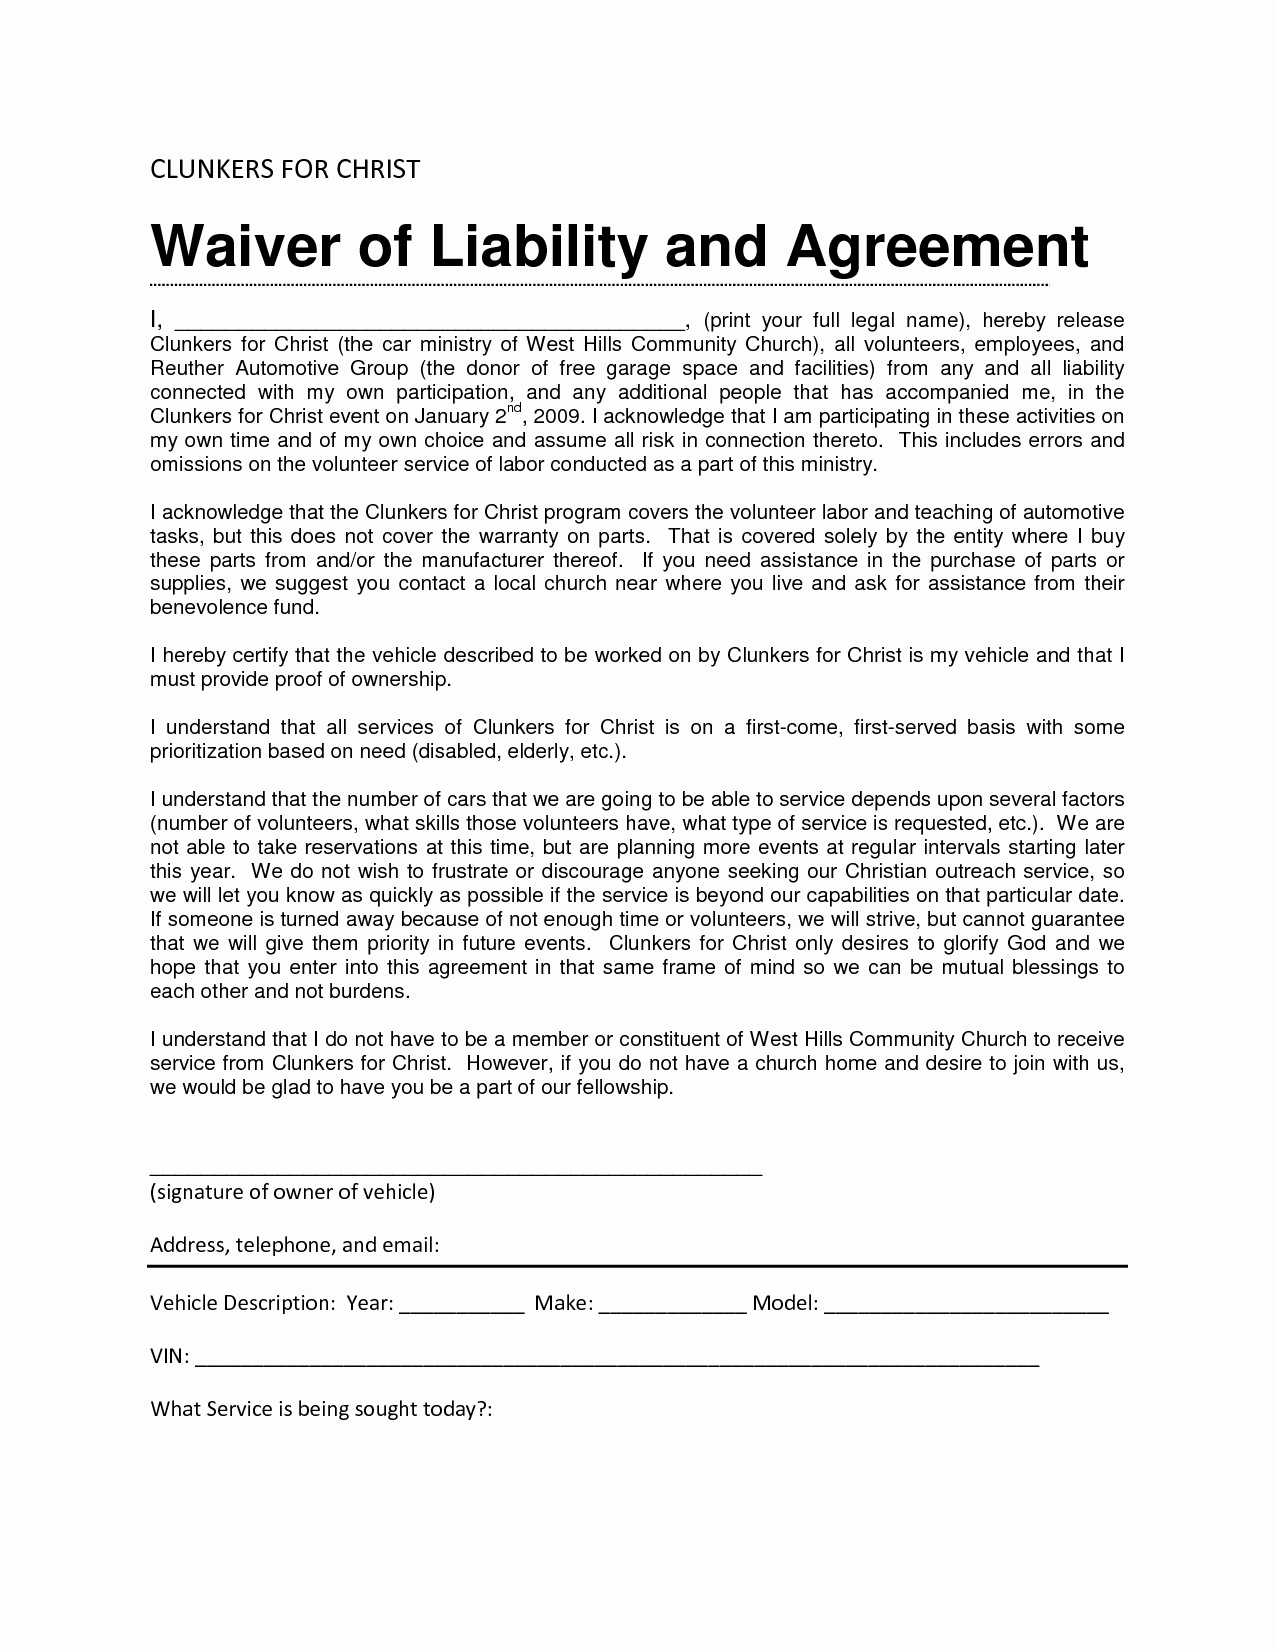 Vehicle Release form Template Best Of Liability Waiver Sample Bamboodownunder